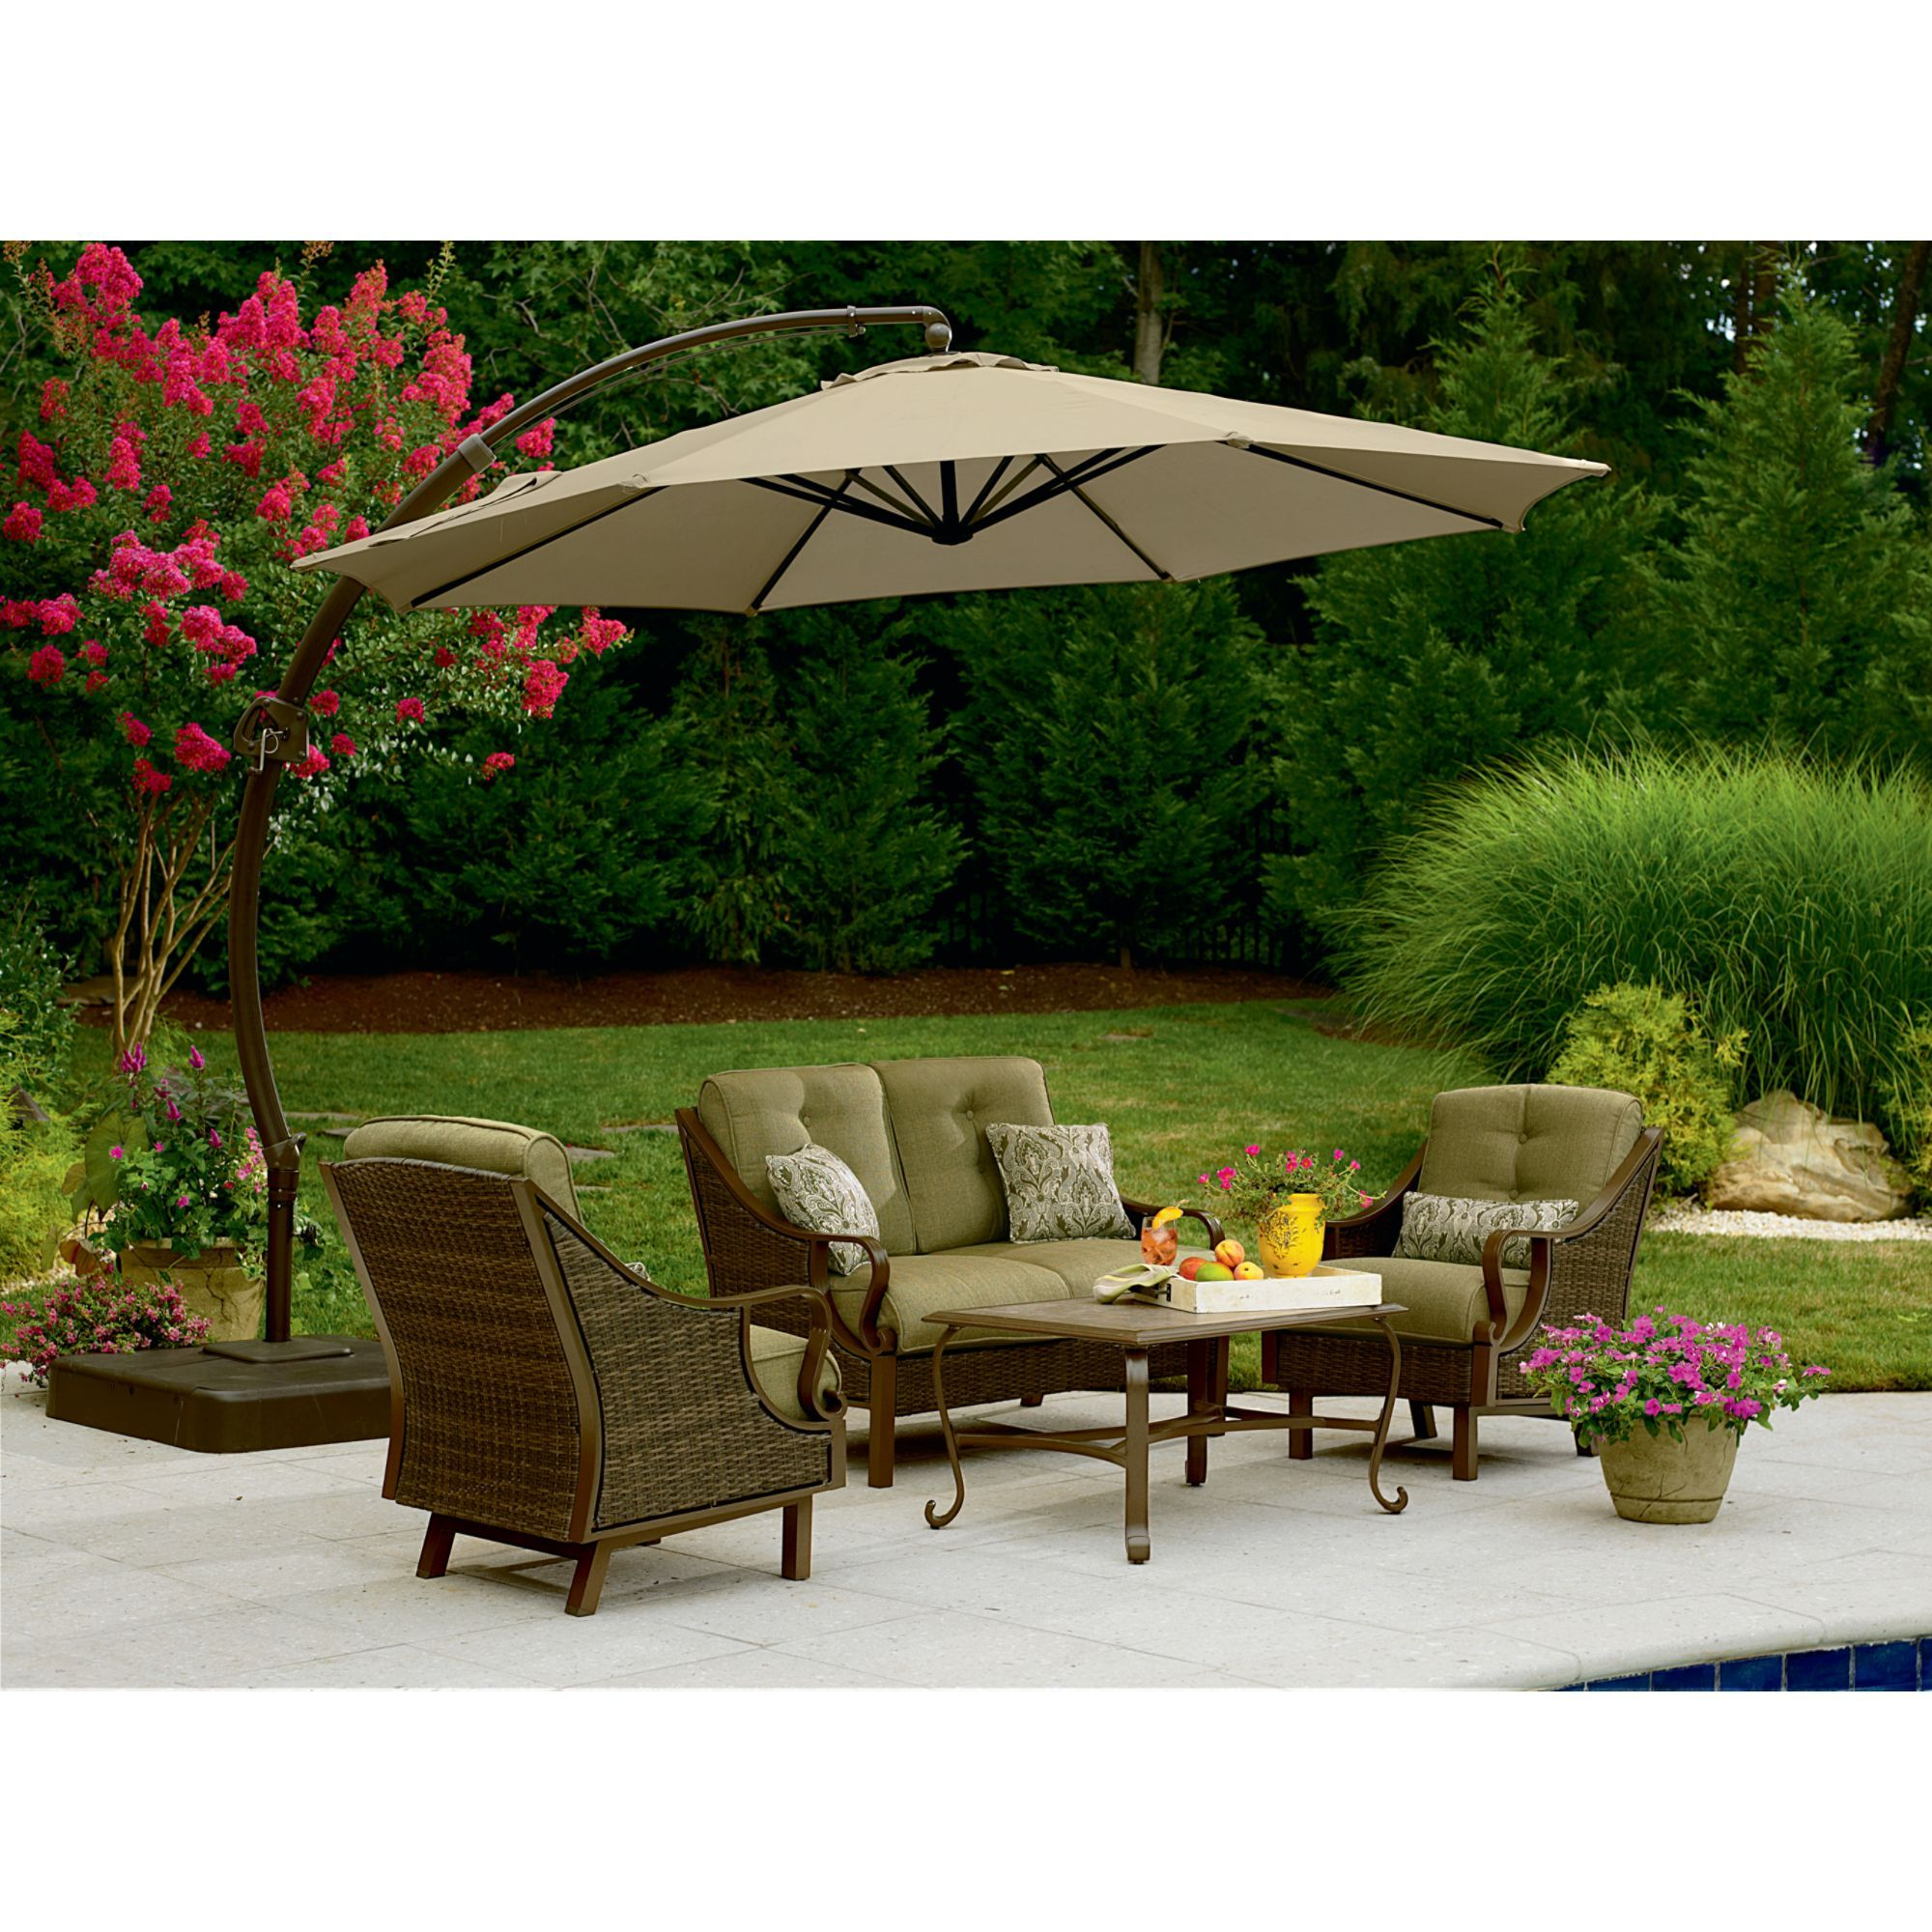 Steel Round Offset Umbrella  Stay Cool by the Pool at SearsSteel Round Offset Umbrella  Stay Cool by the Pool at Sears   For  . Sears Chaise Lounge Chairs Patio Furniture. Home Design Ideas